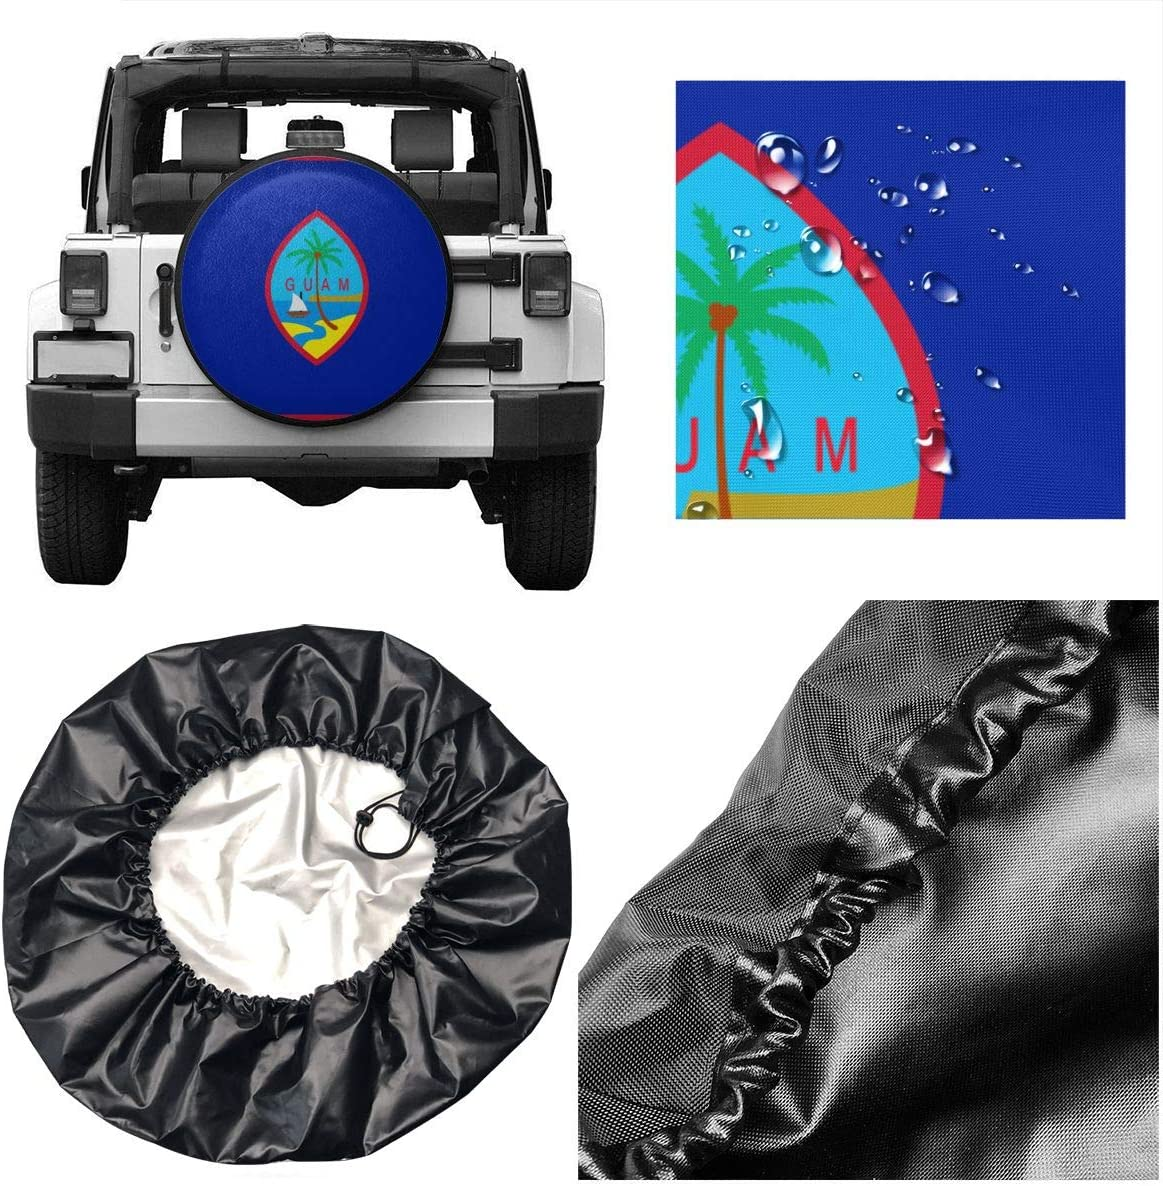 Runytek GM Tire Dust-proof Cover Protective Cover Spare Tire Storage Bag Fits up to 32 inches Diameter Tires